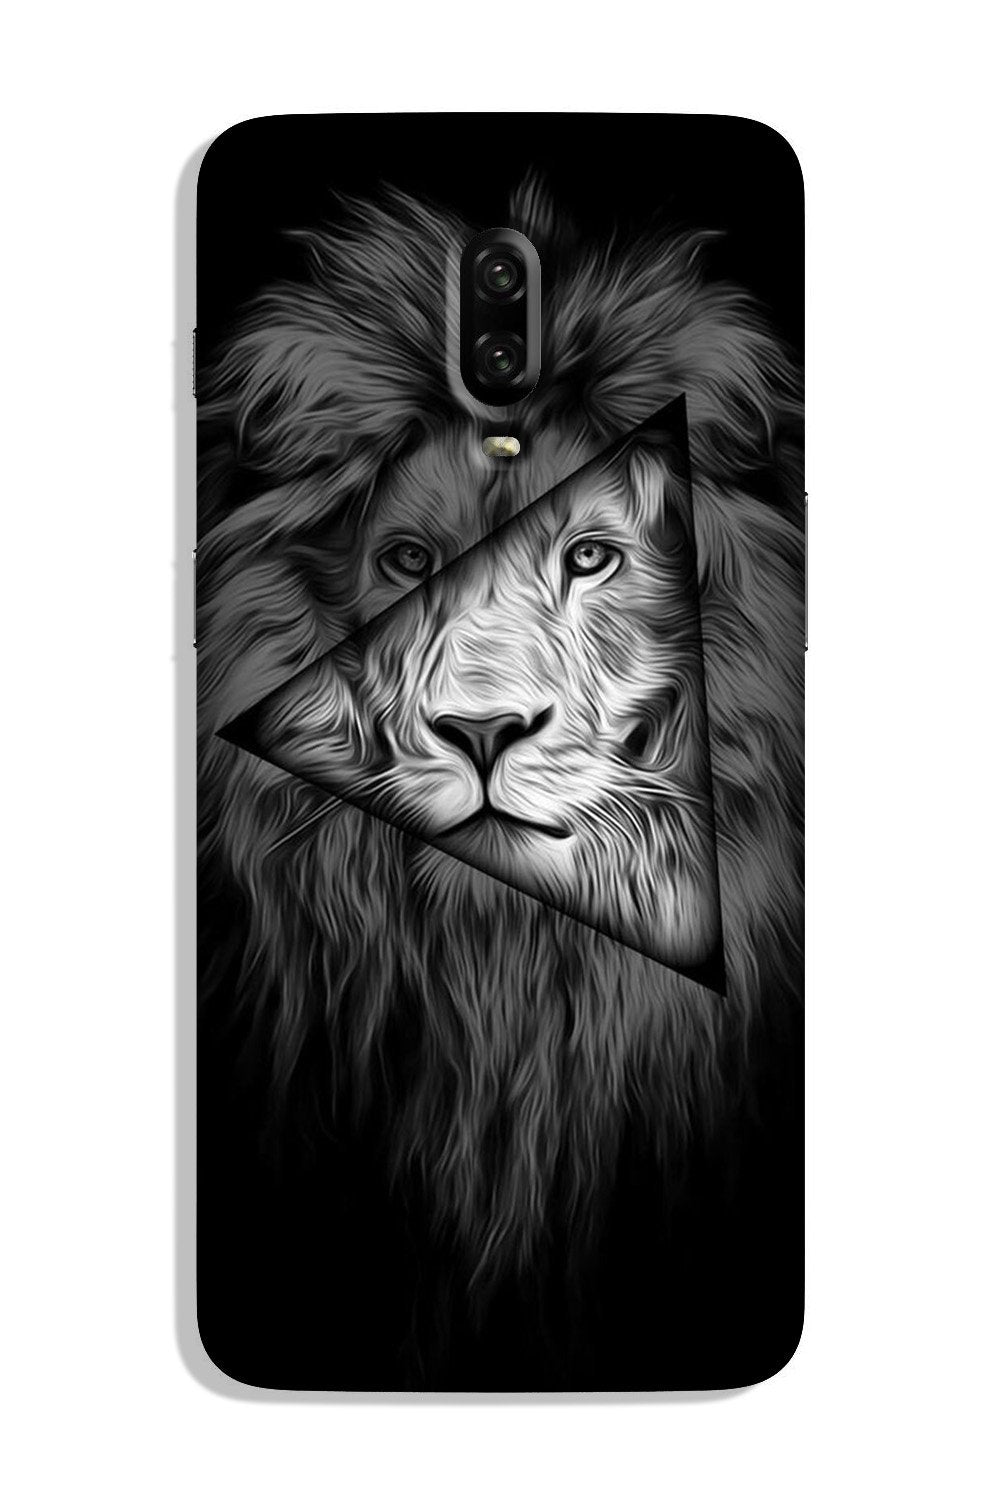 Lion Star Case for OnePlus 6T (Design No. 226)